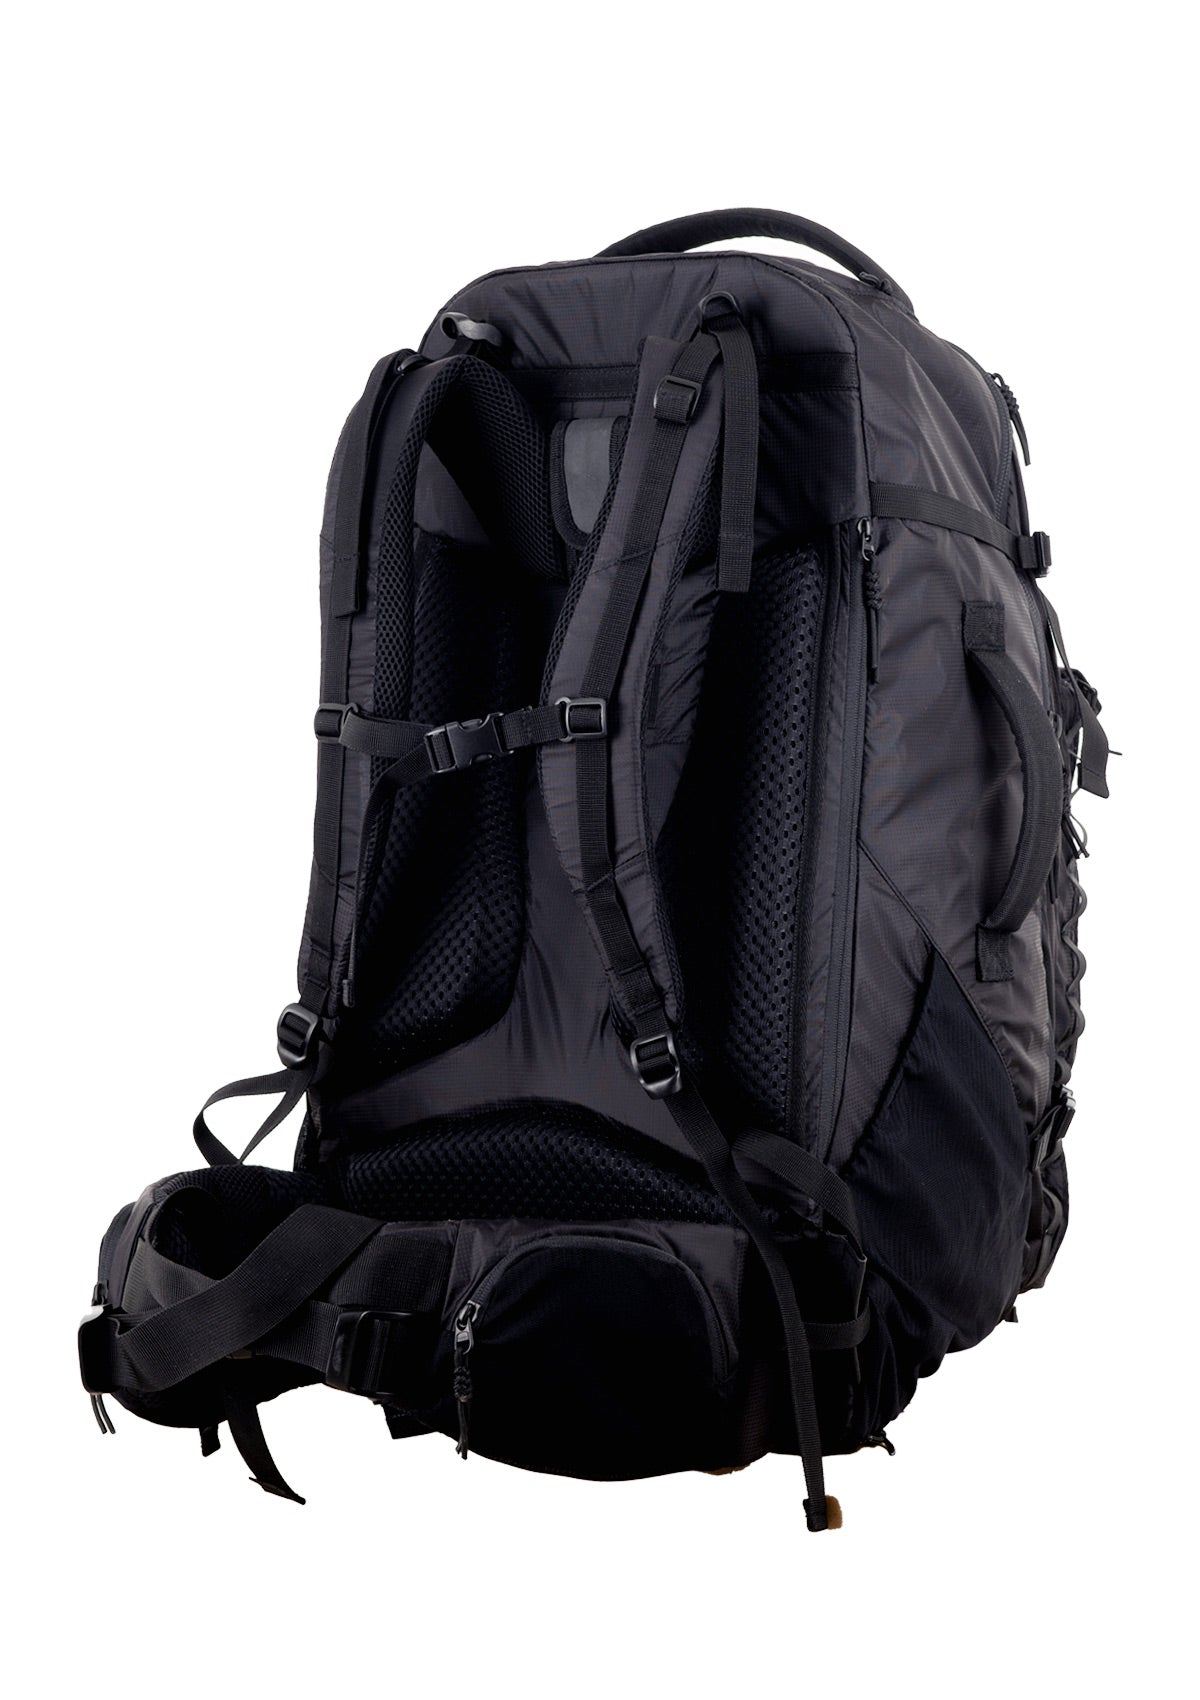 60 Litre Expedition Pack